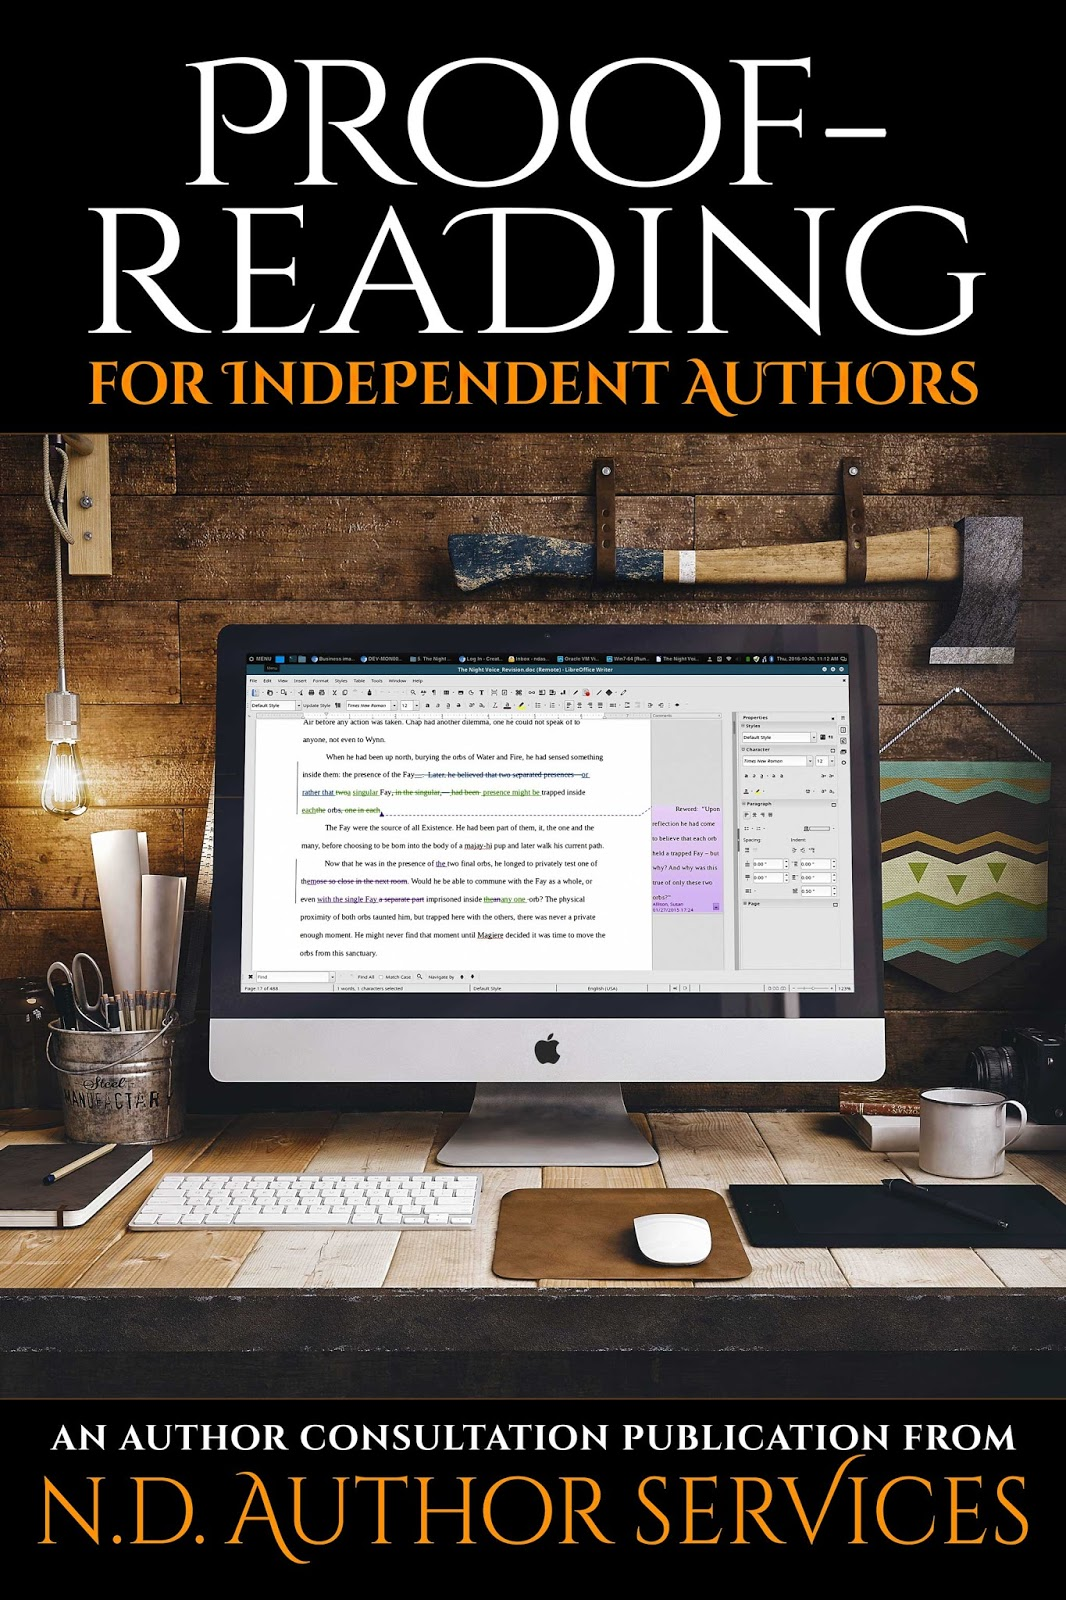 Proofreading for Independent Authors - A Consultation Publication from N.D. Author Services